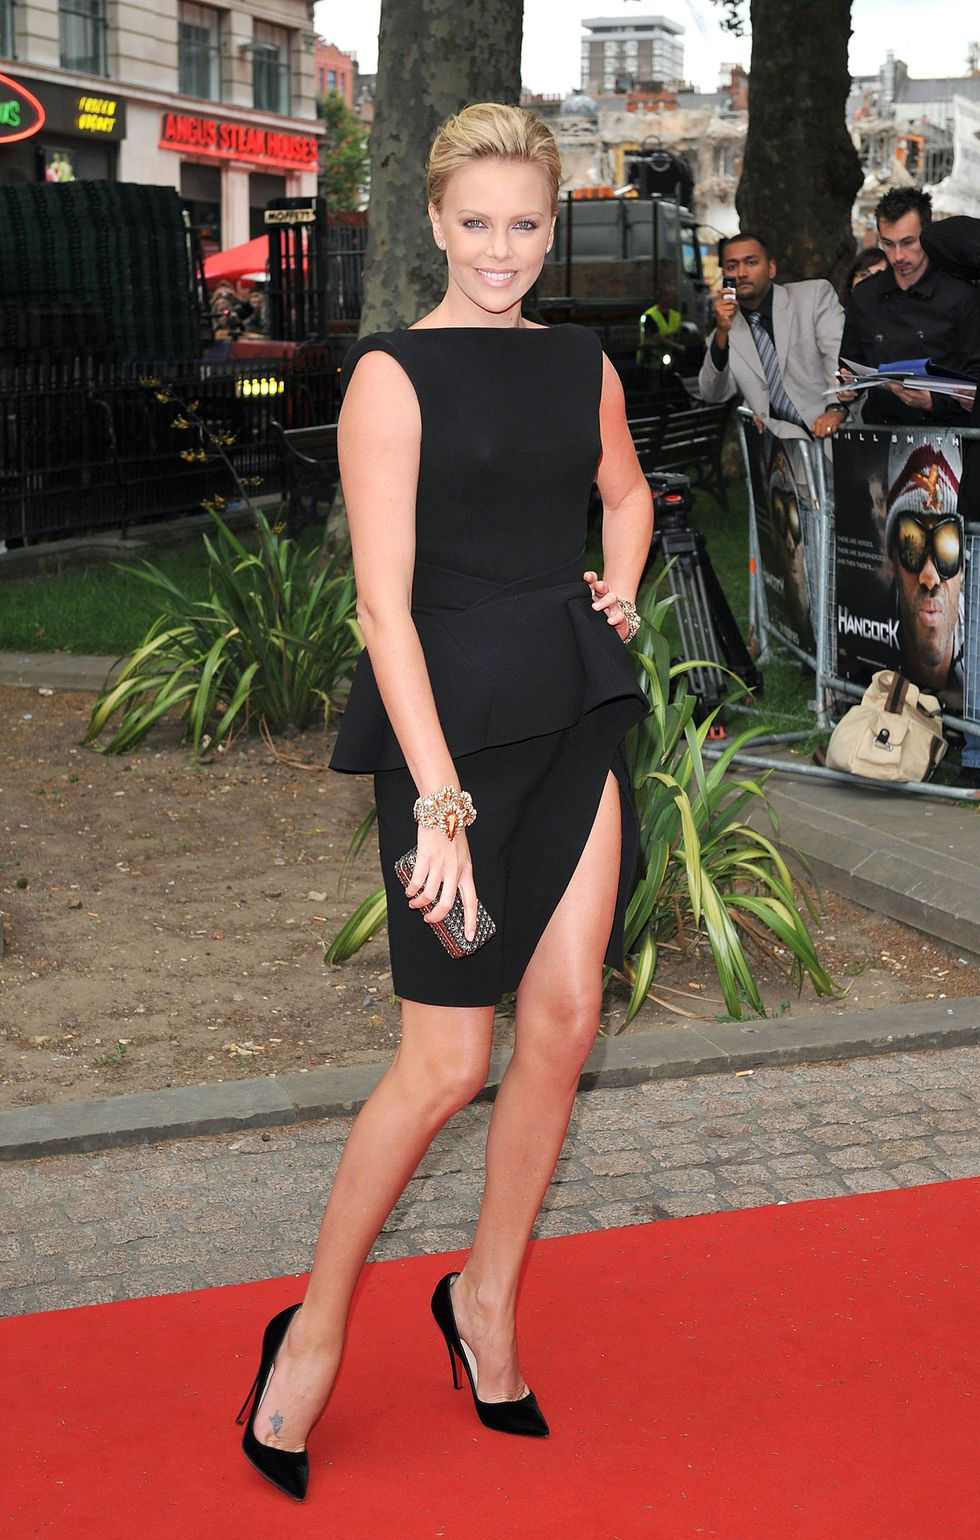 charlize-theron-hancock-uk-premiere-in-london-08